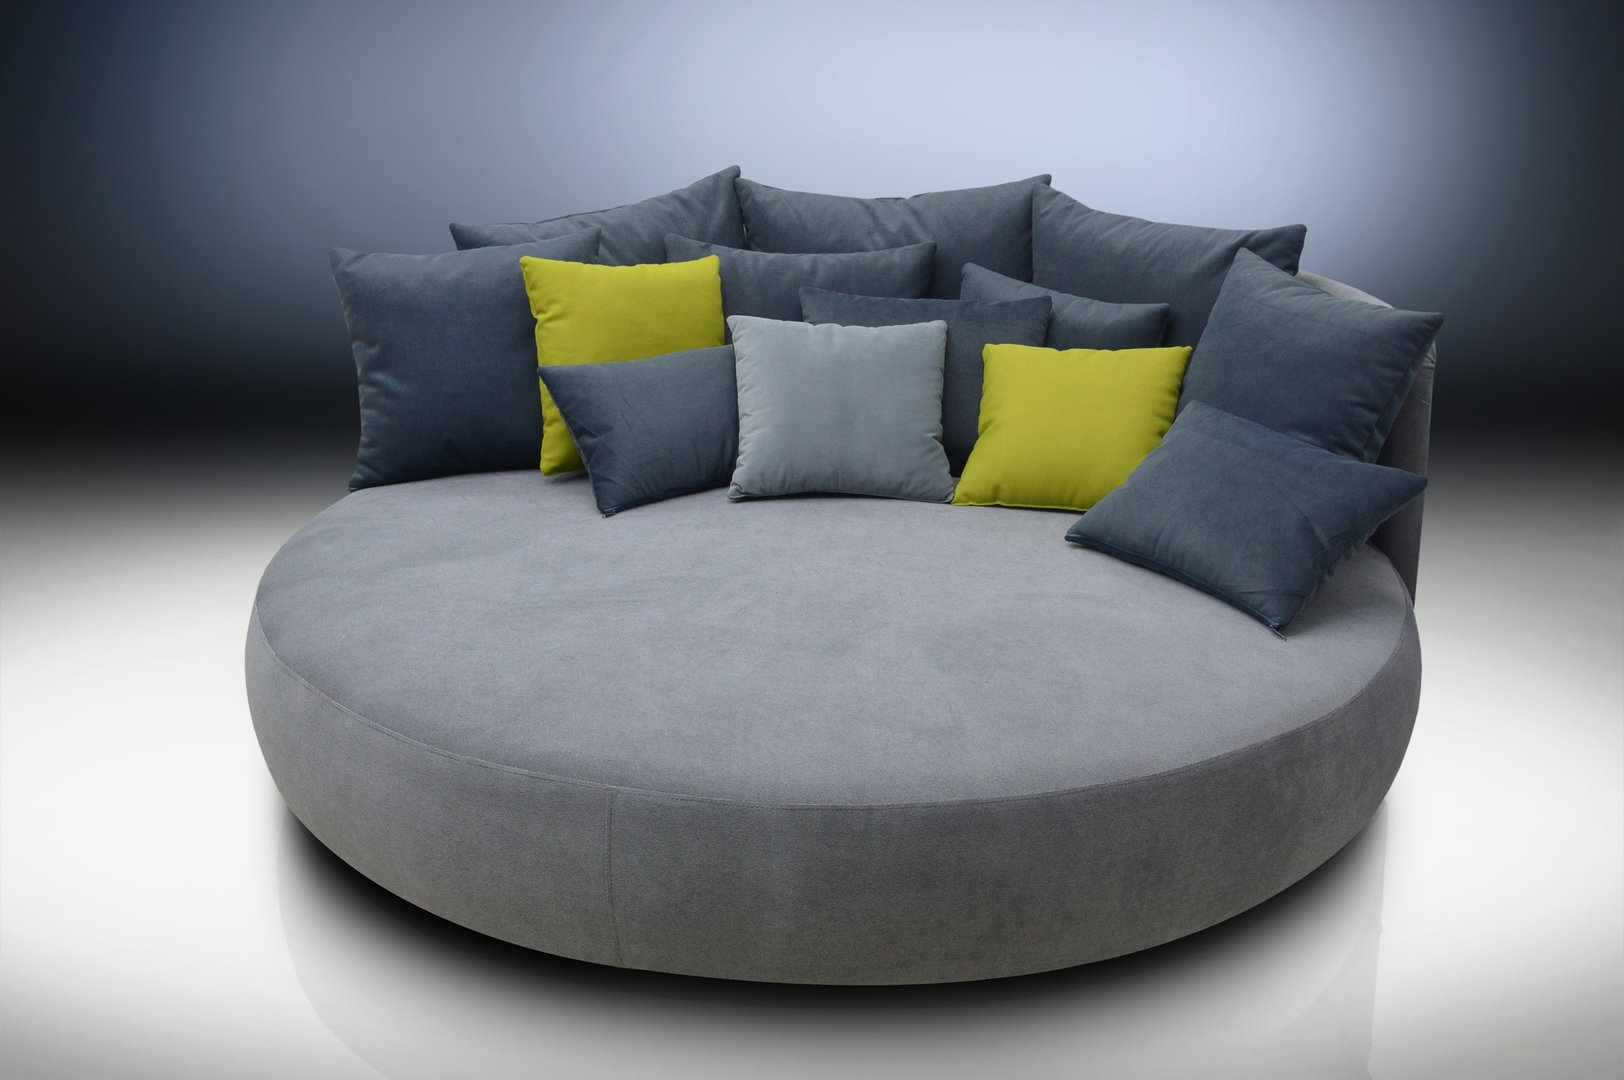 Round Sofas For Most Current Sofa : Sofa Chair Round Elegant Sofa Half Round Sofa Sofas Round (View 7 of 15)